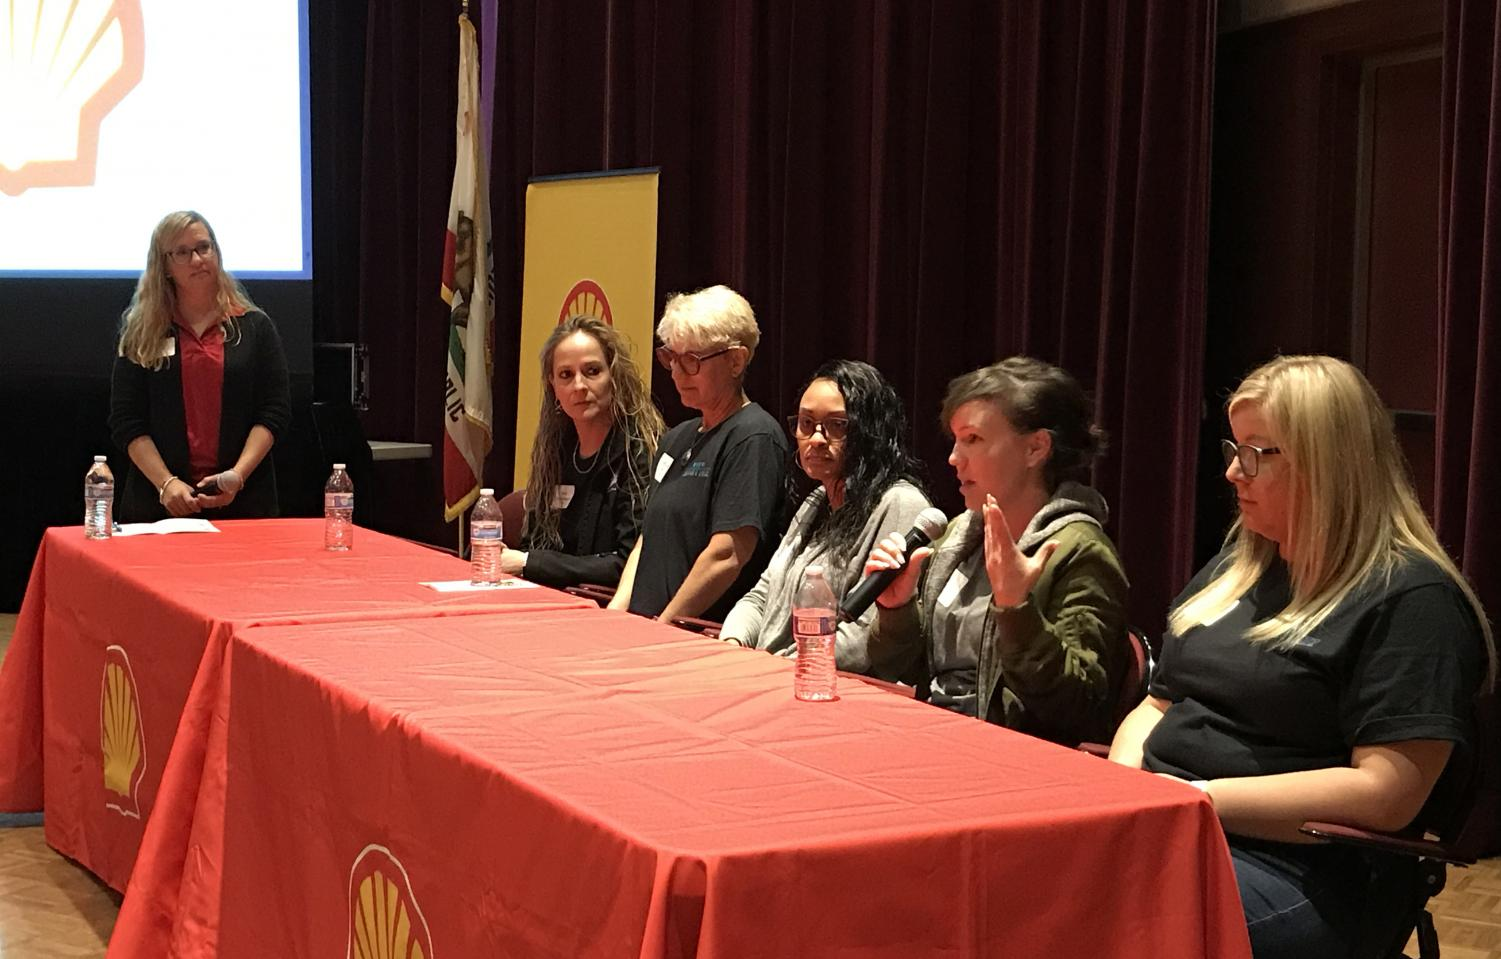 Shell employees empower women and talk about their jobs to inspire more women going into STEM fields.